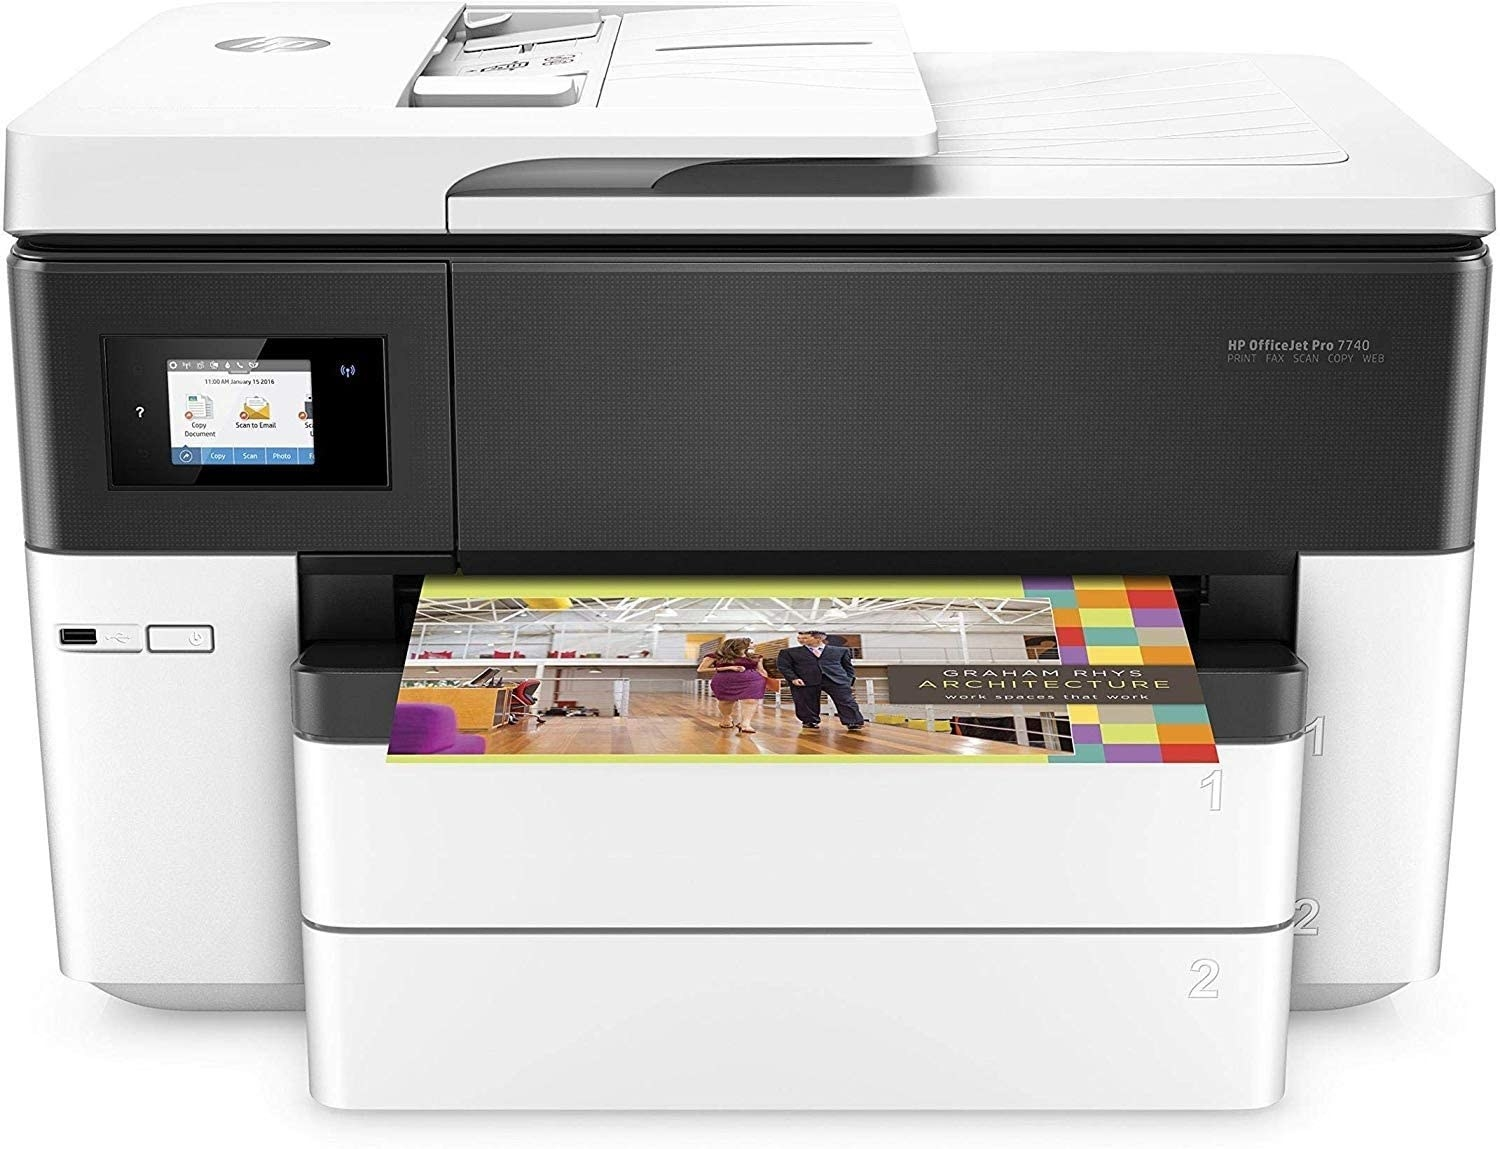 A large desktop printer with a scanner and fax attachment on the top